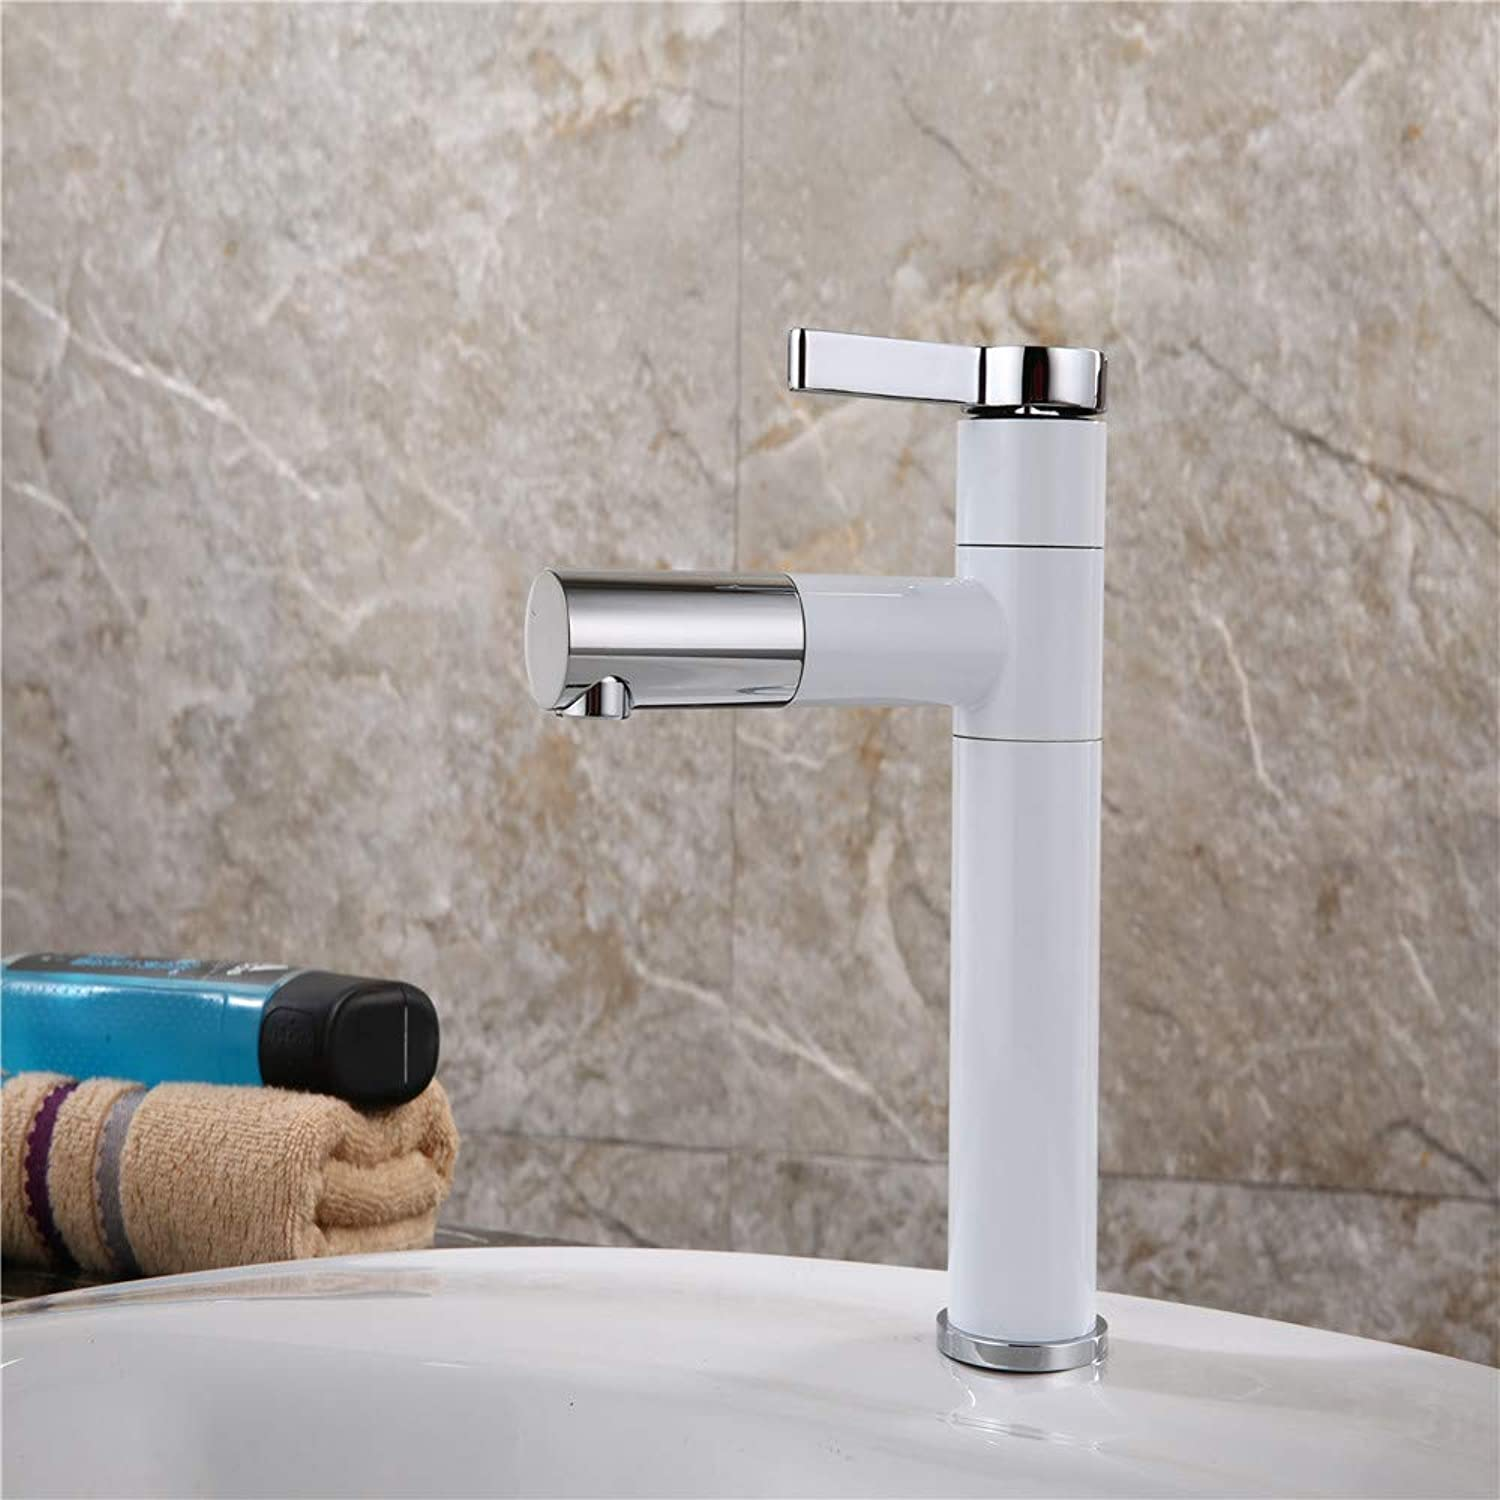 Bathroom Waterfall Basin Faucet Single Hole Brass hot and Cold Water Deck Inssizetion